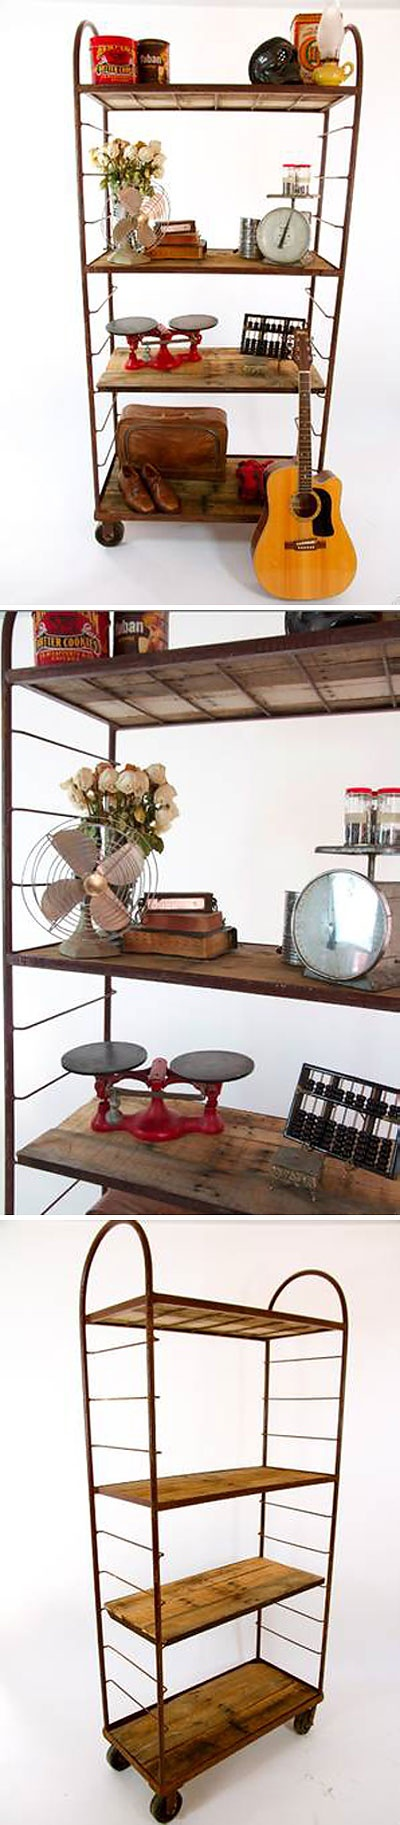 Industrial Bakers Rack Shelving, 7'W x 3'H :: $400 | Hollywood, LA Craigslist :: Now if I could only find a bakers rack w/ adjustable shelving like this one!